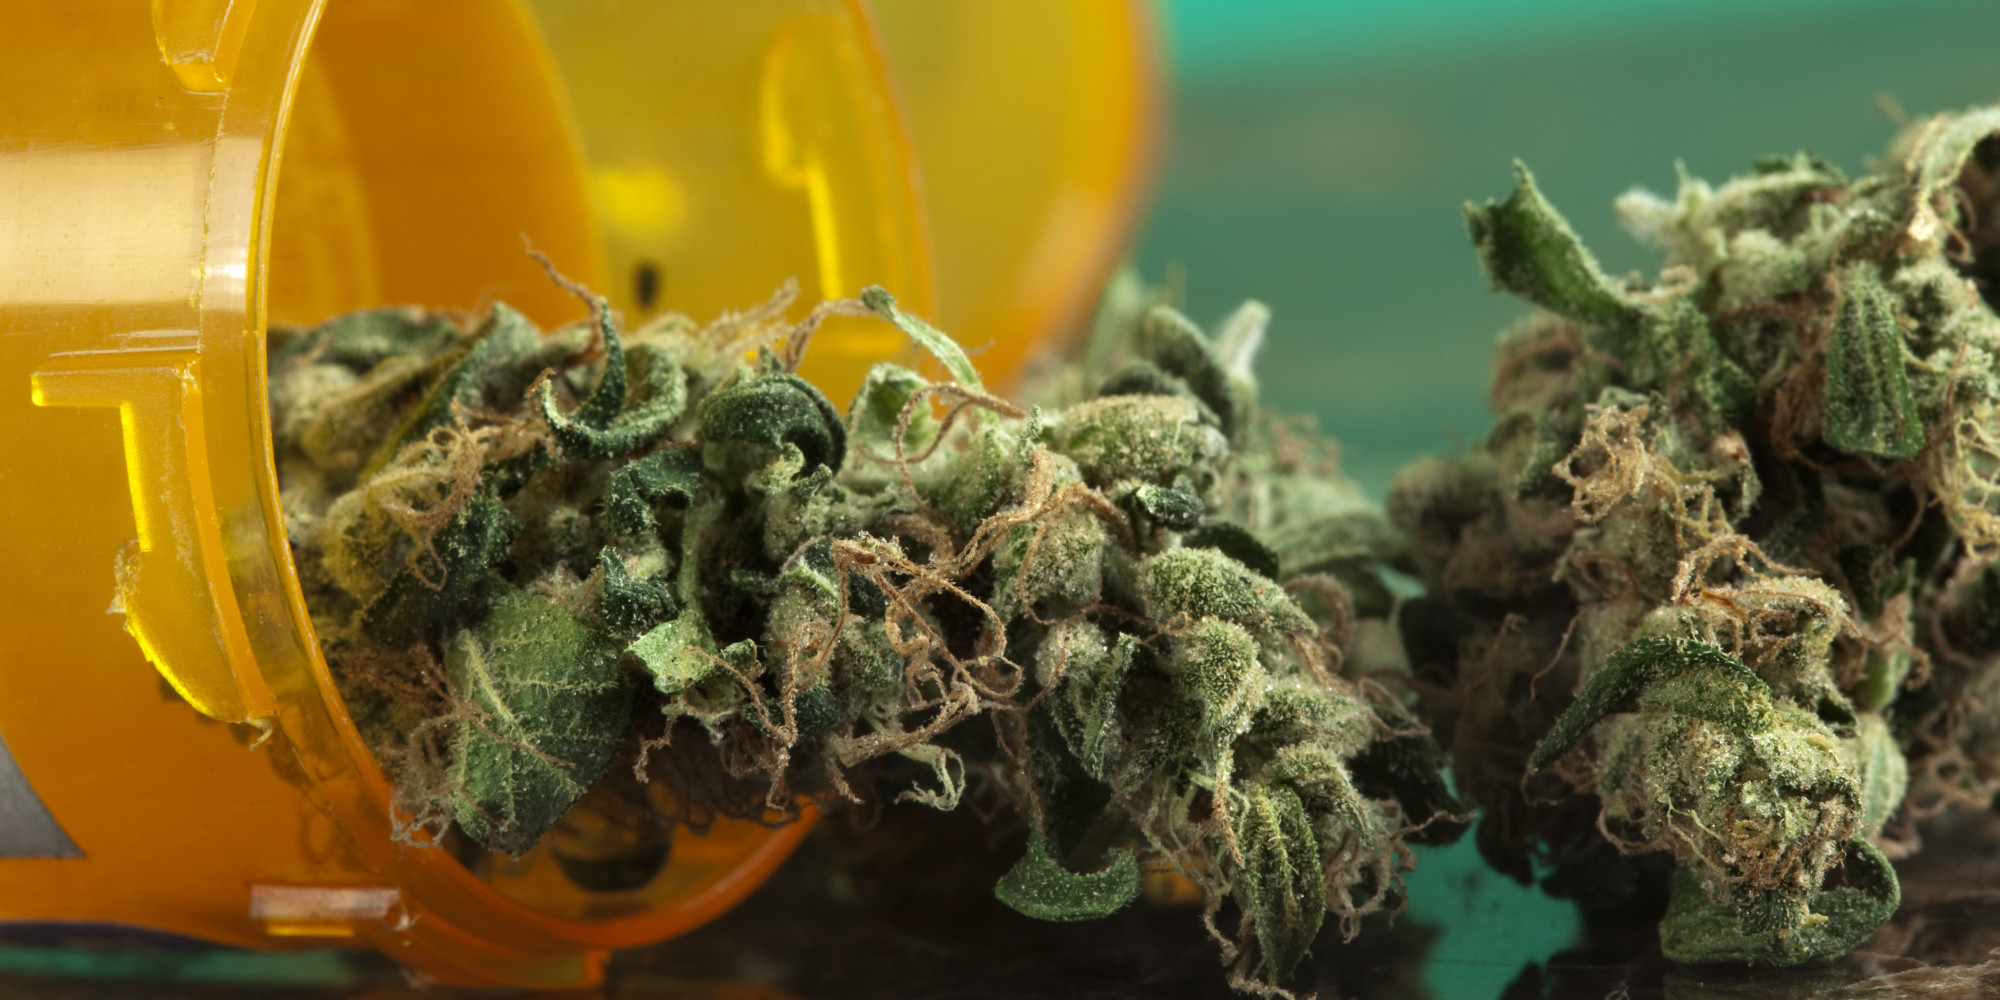 Arkansas Drug Policy Education Group Seeks to Expand List of MMJ Qualifying Medical Conditions